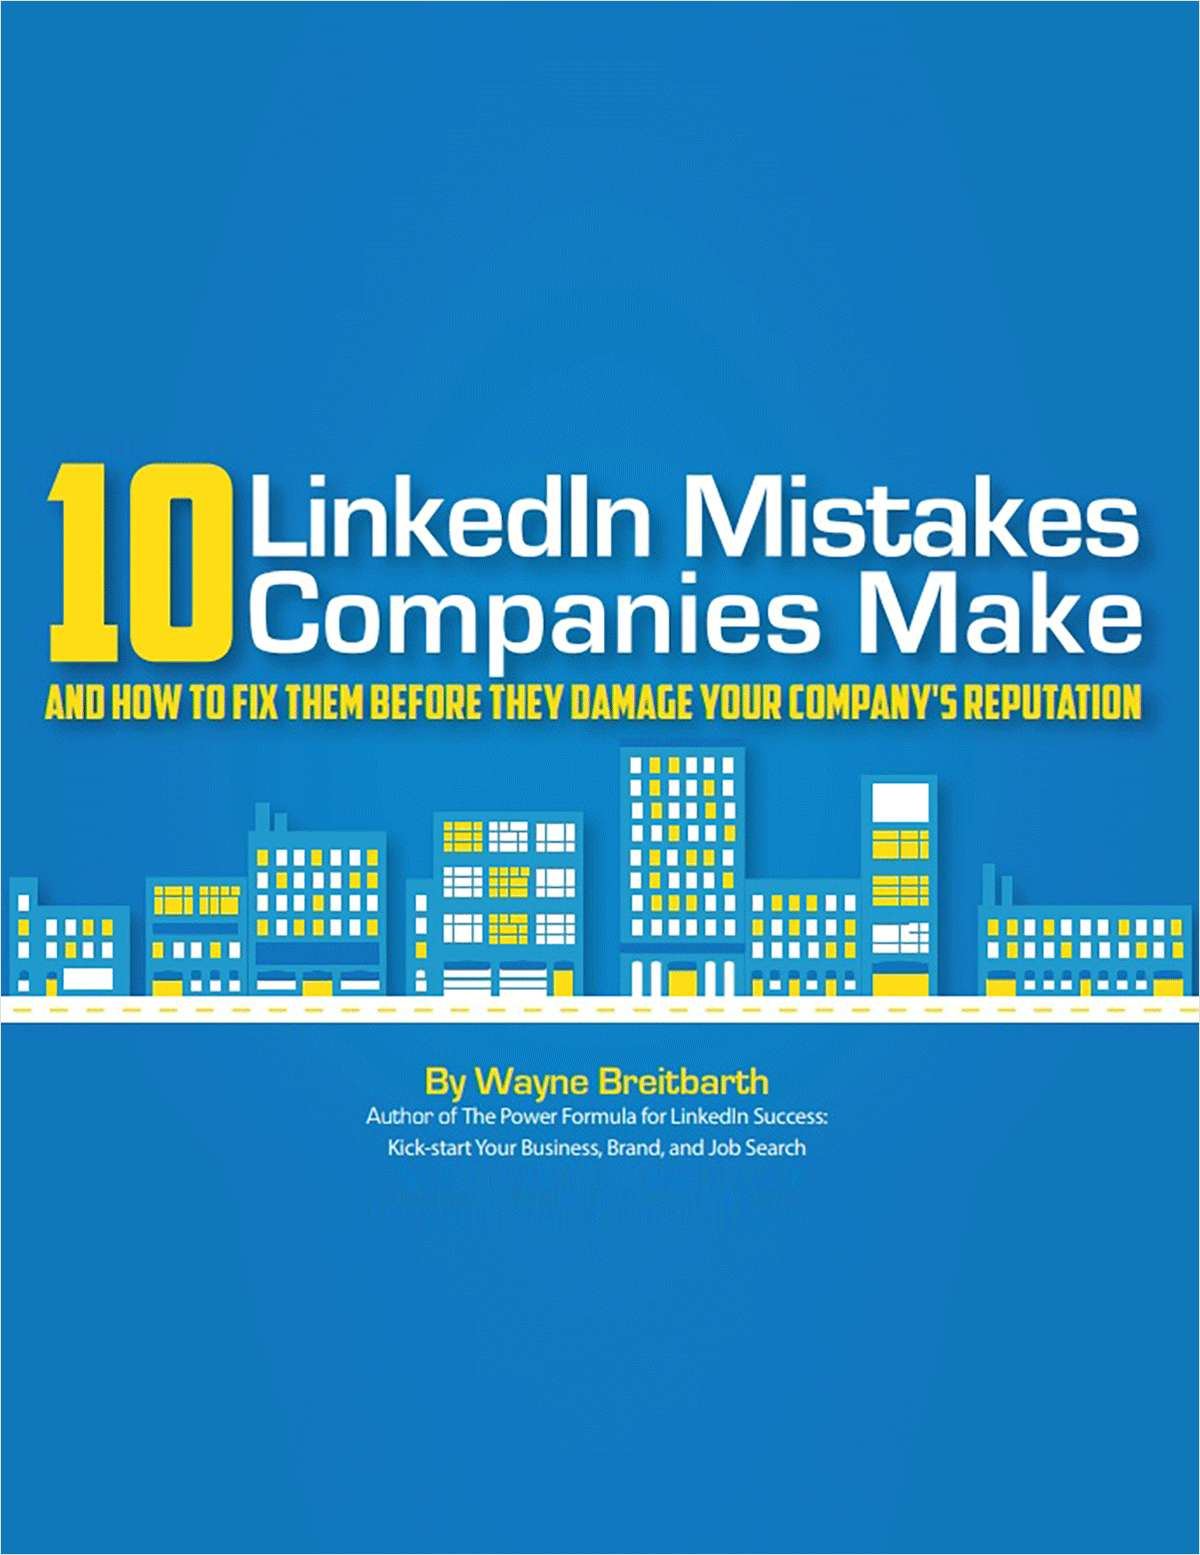 10 LinkedIn Mistakes Companies Make